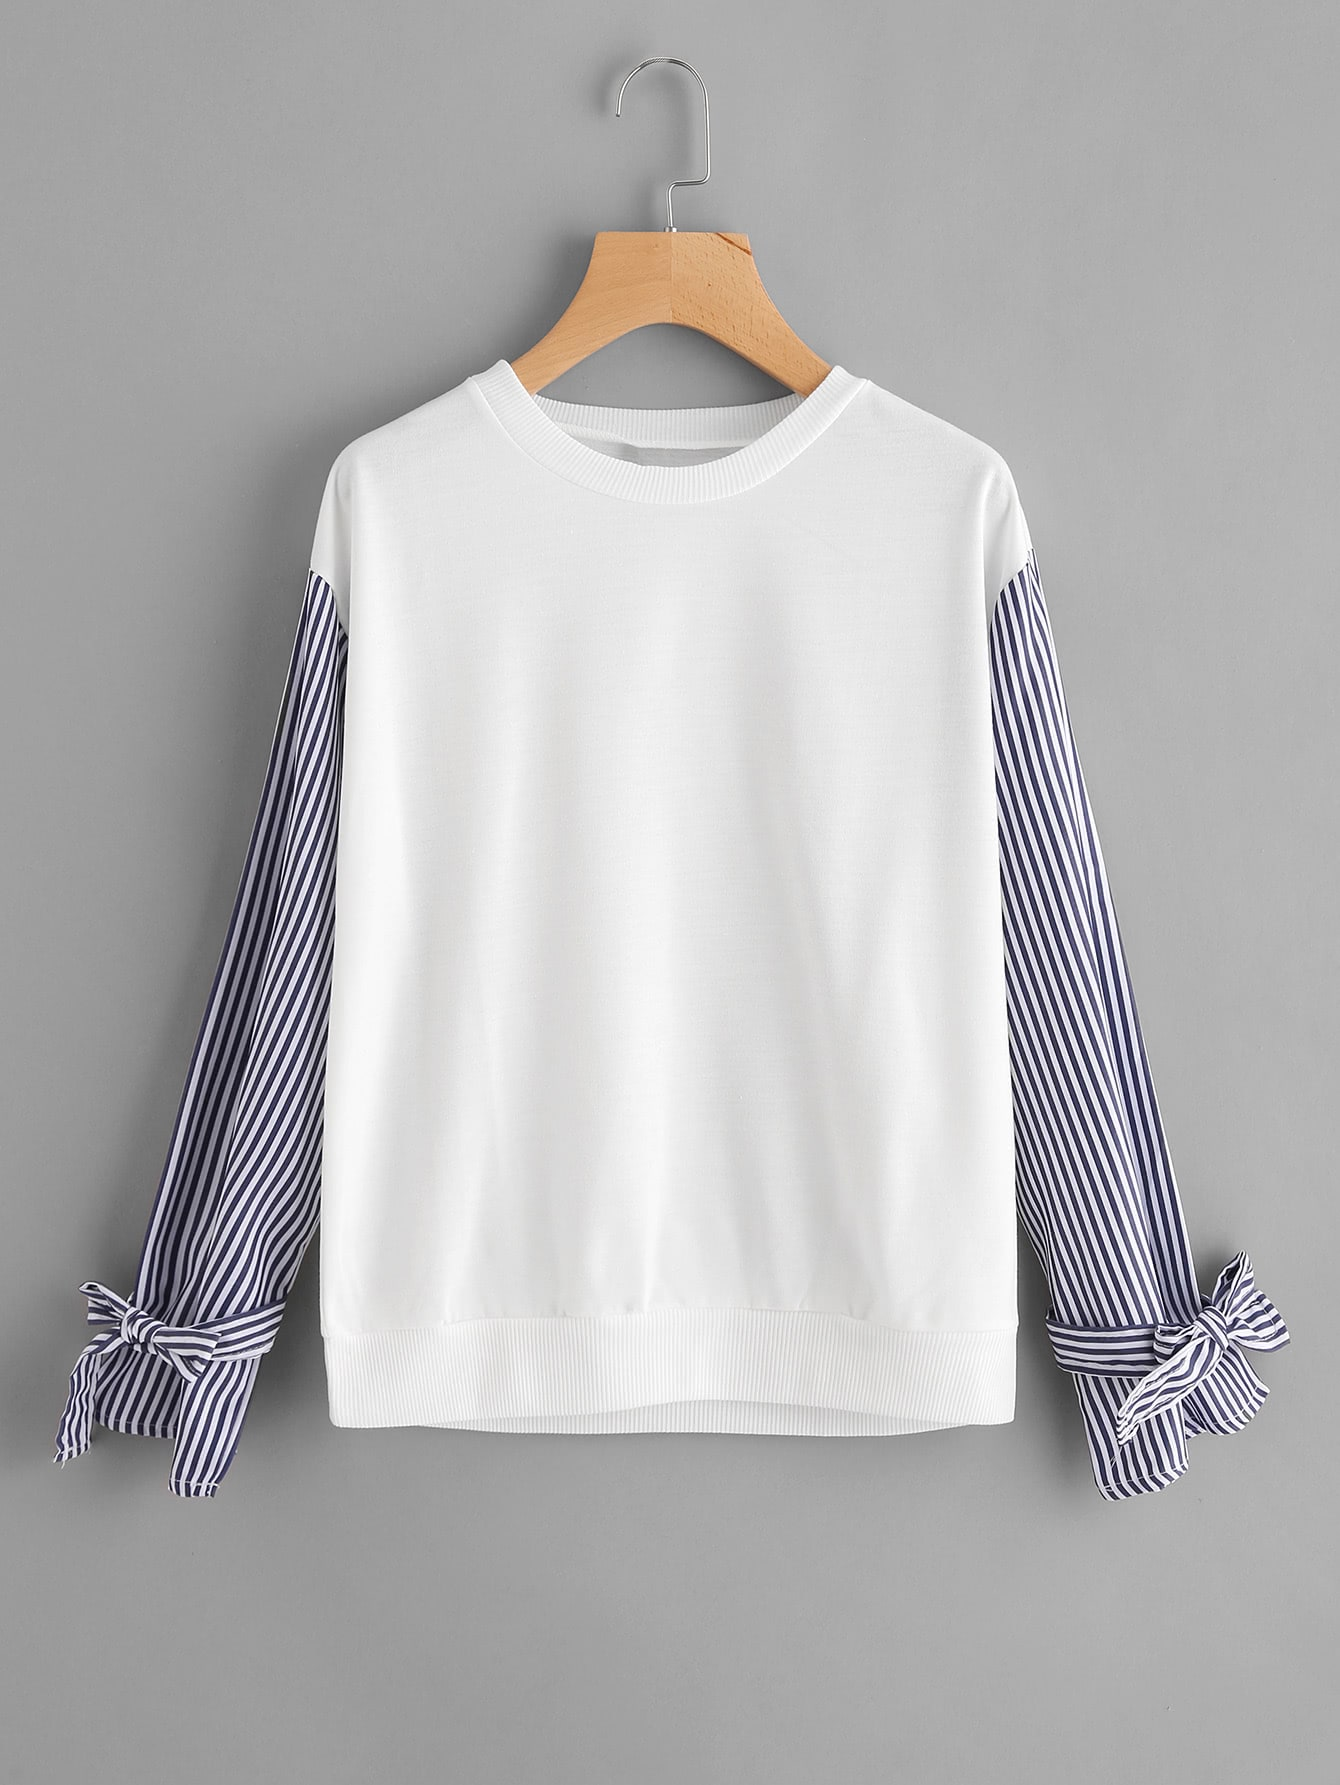 Contrast Striped Bow Tie Sleeve Tee bow tie bell cuff striped tee